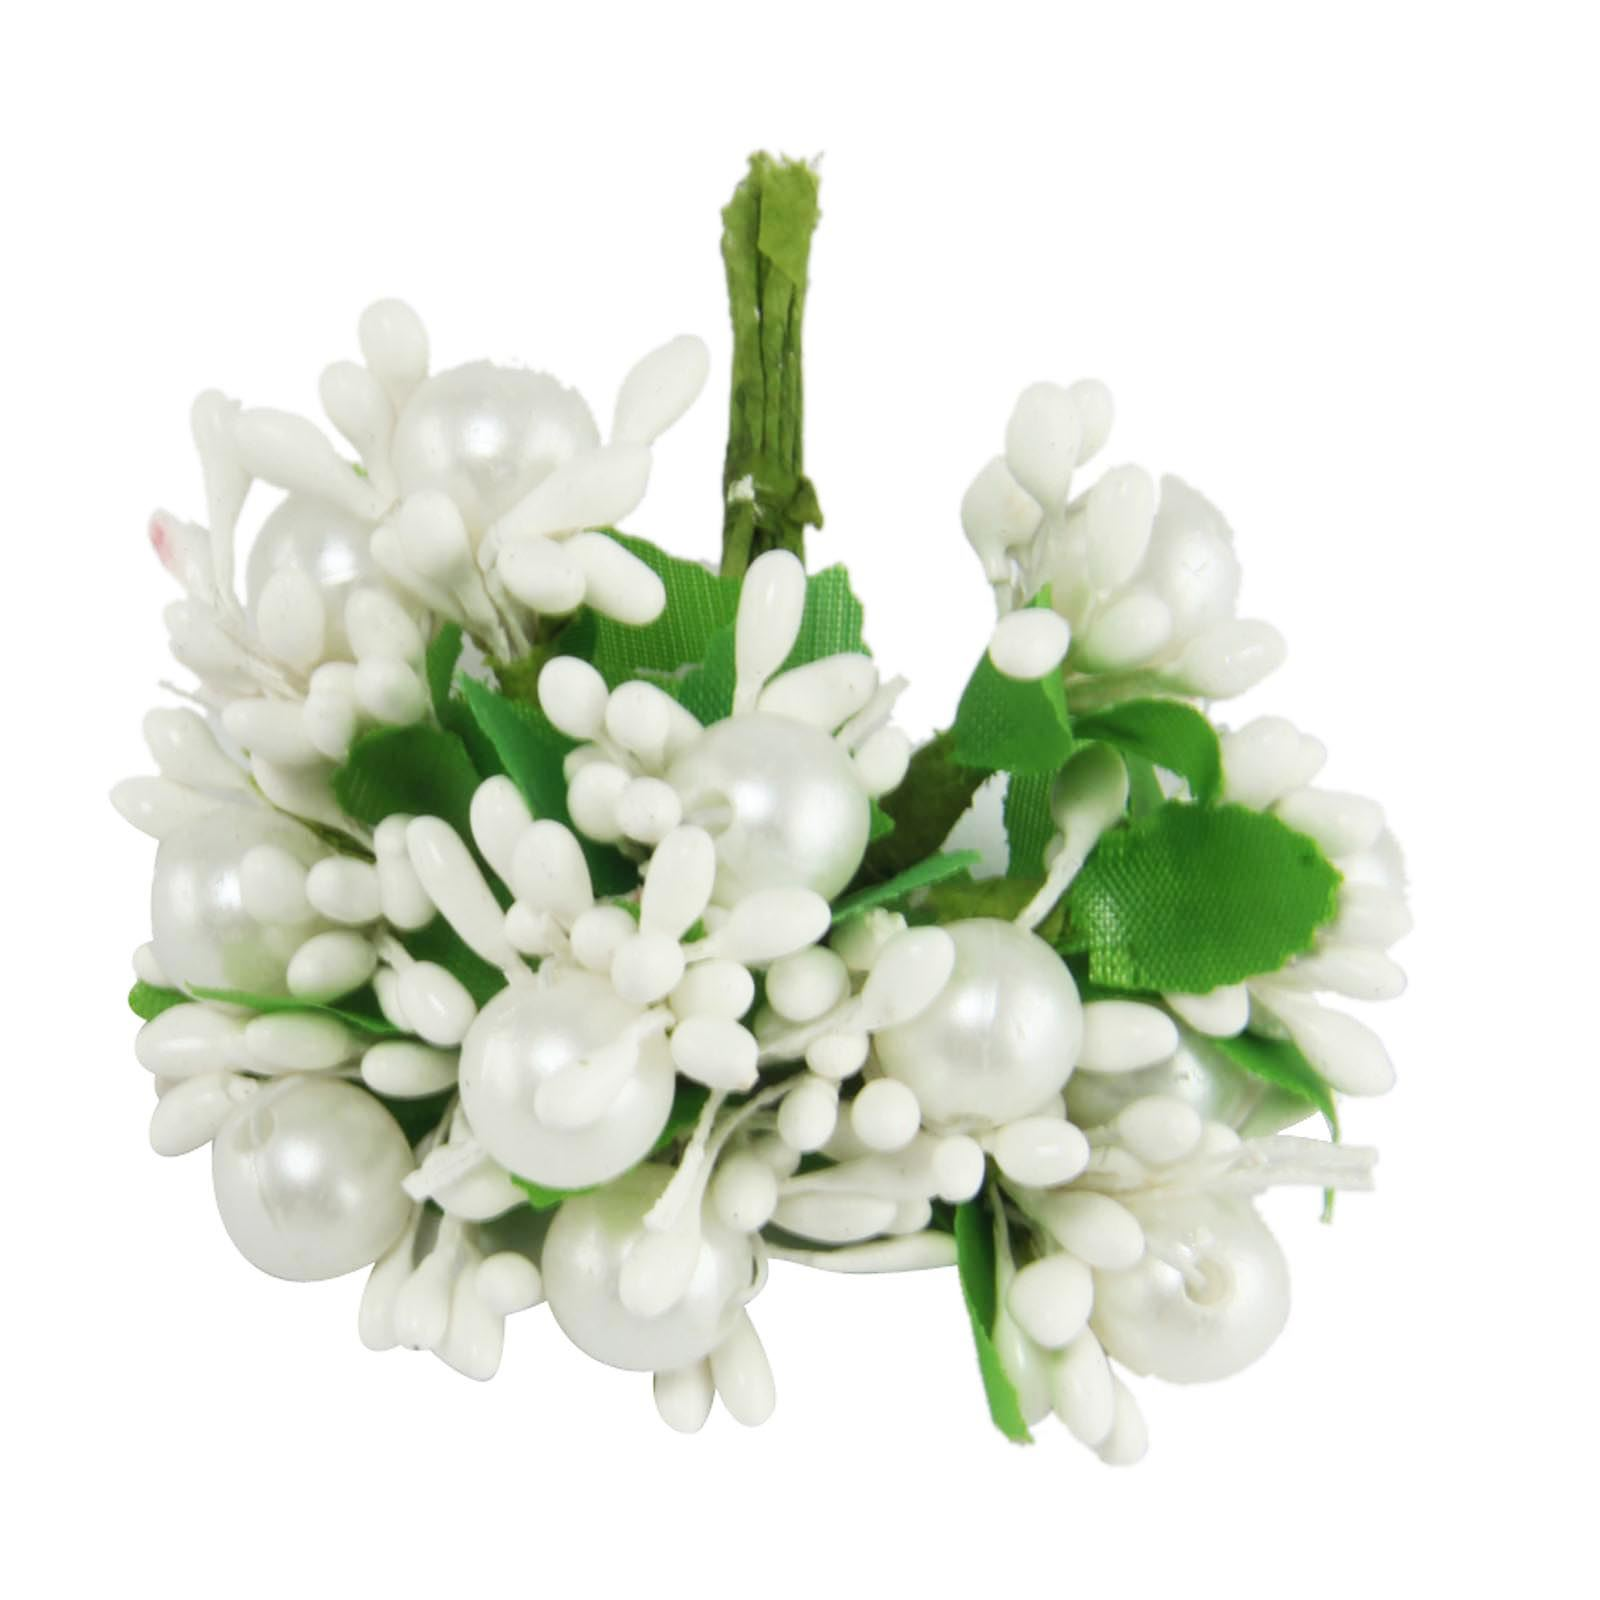 Small Bunch Of Pearl And Stamen Embellishment Flowers Craft Card